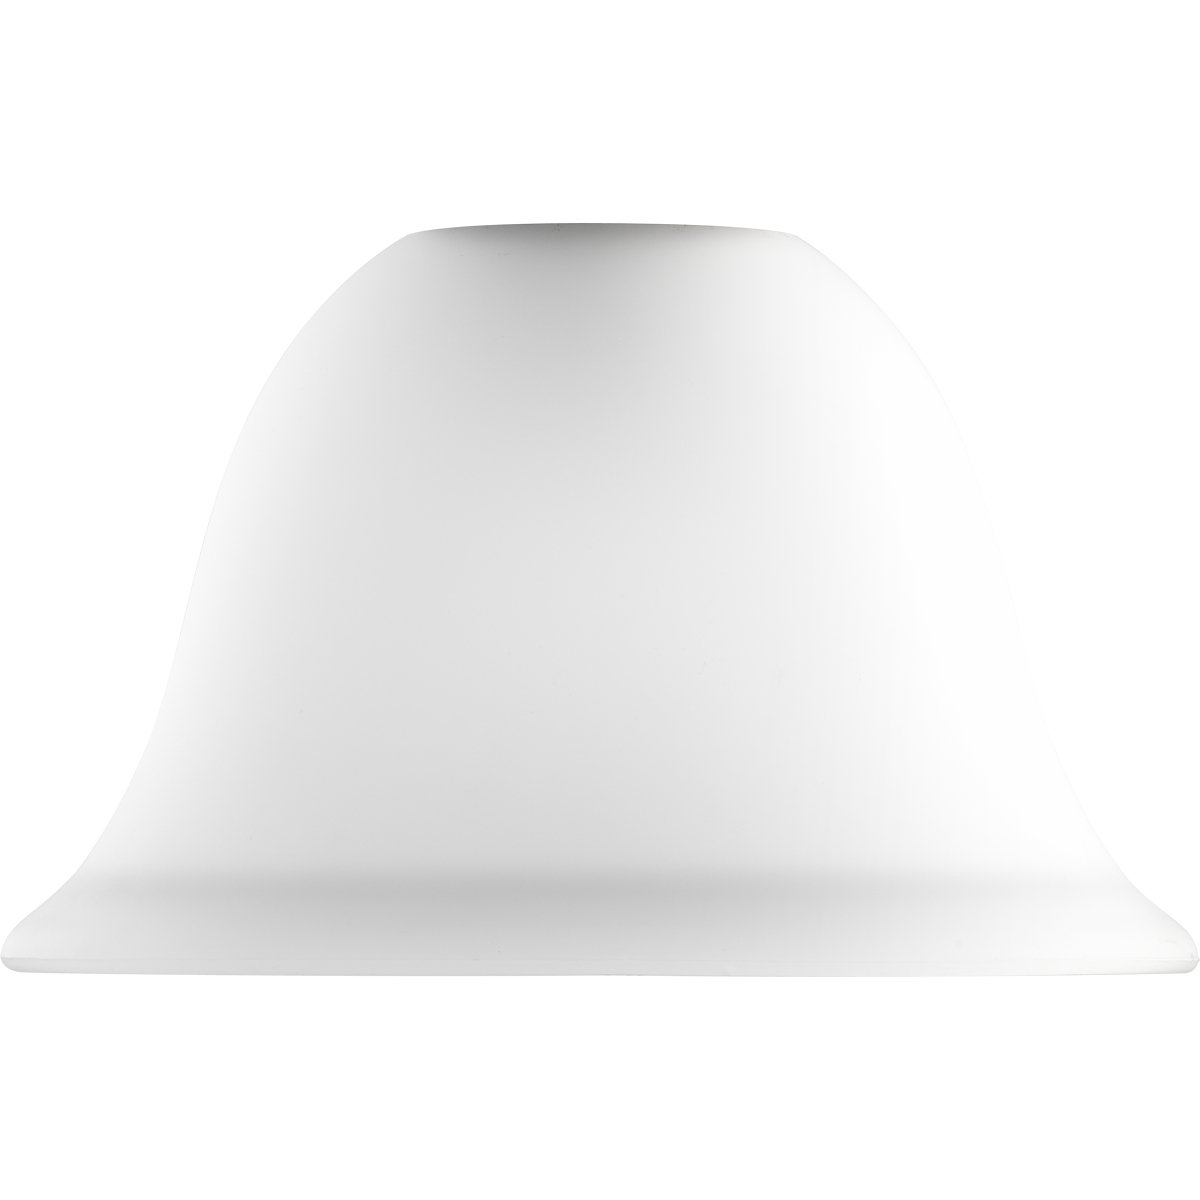 HomeStyle HS99000-01 Glass replacement shade